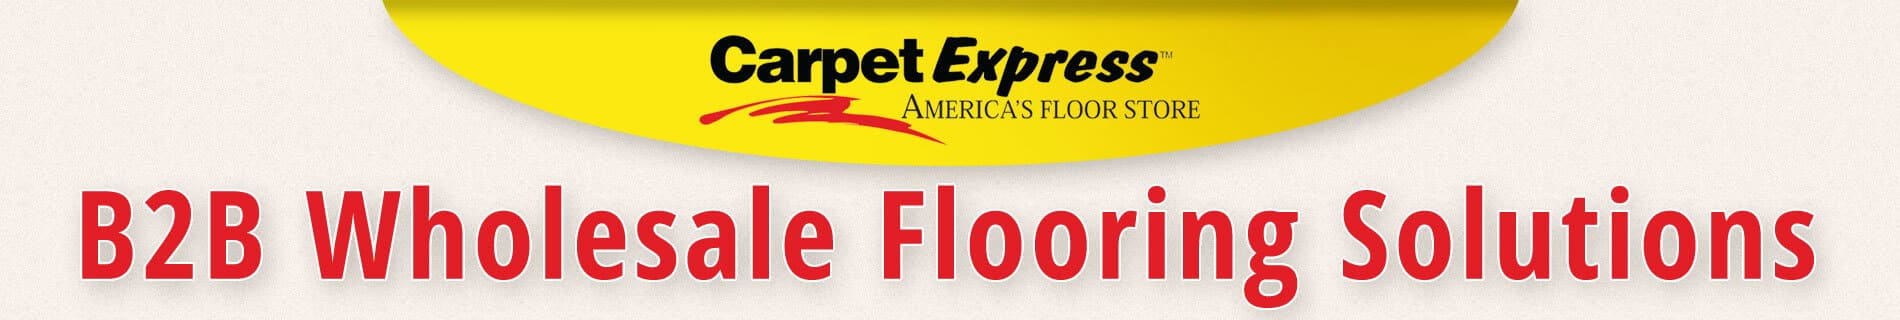 B2B Wholesale Flooring Solutions